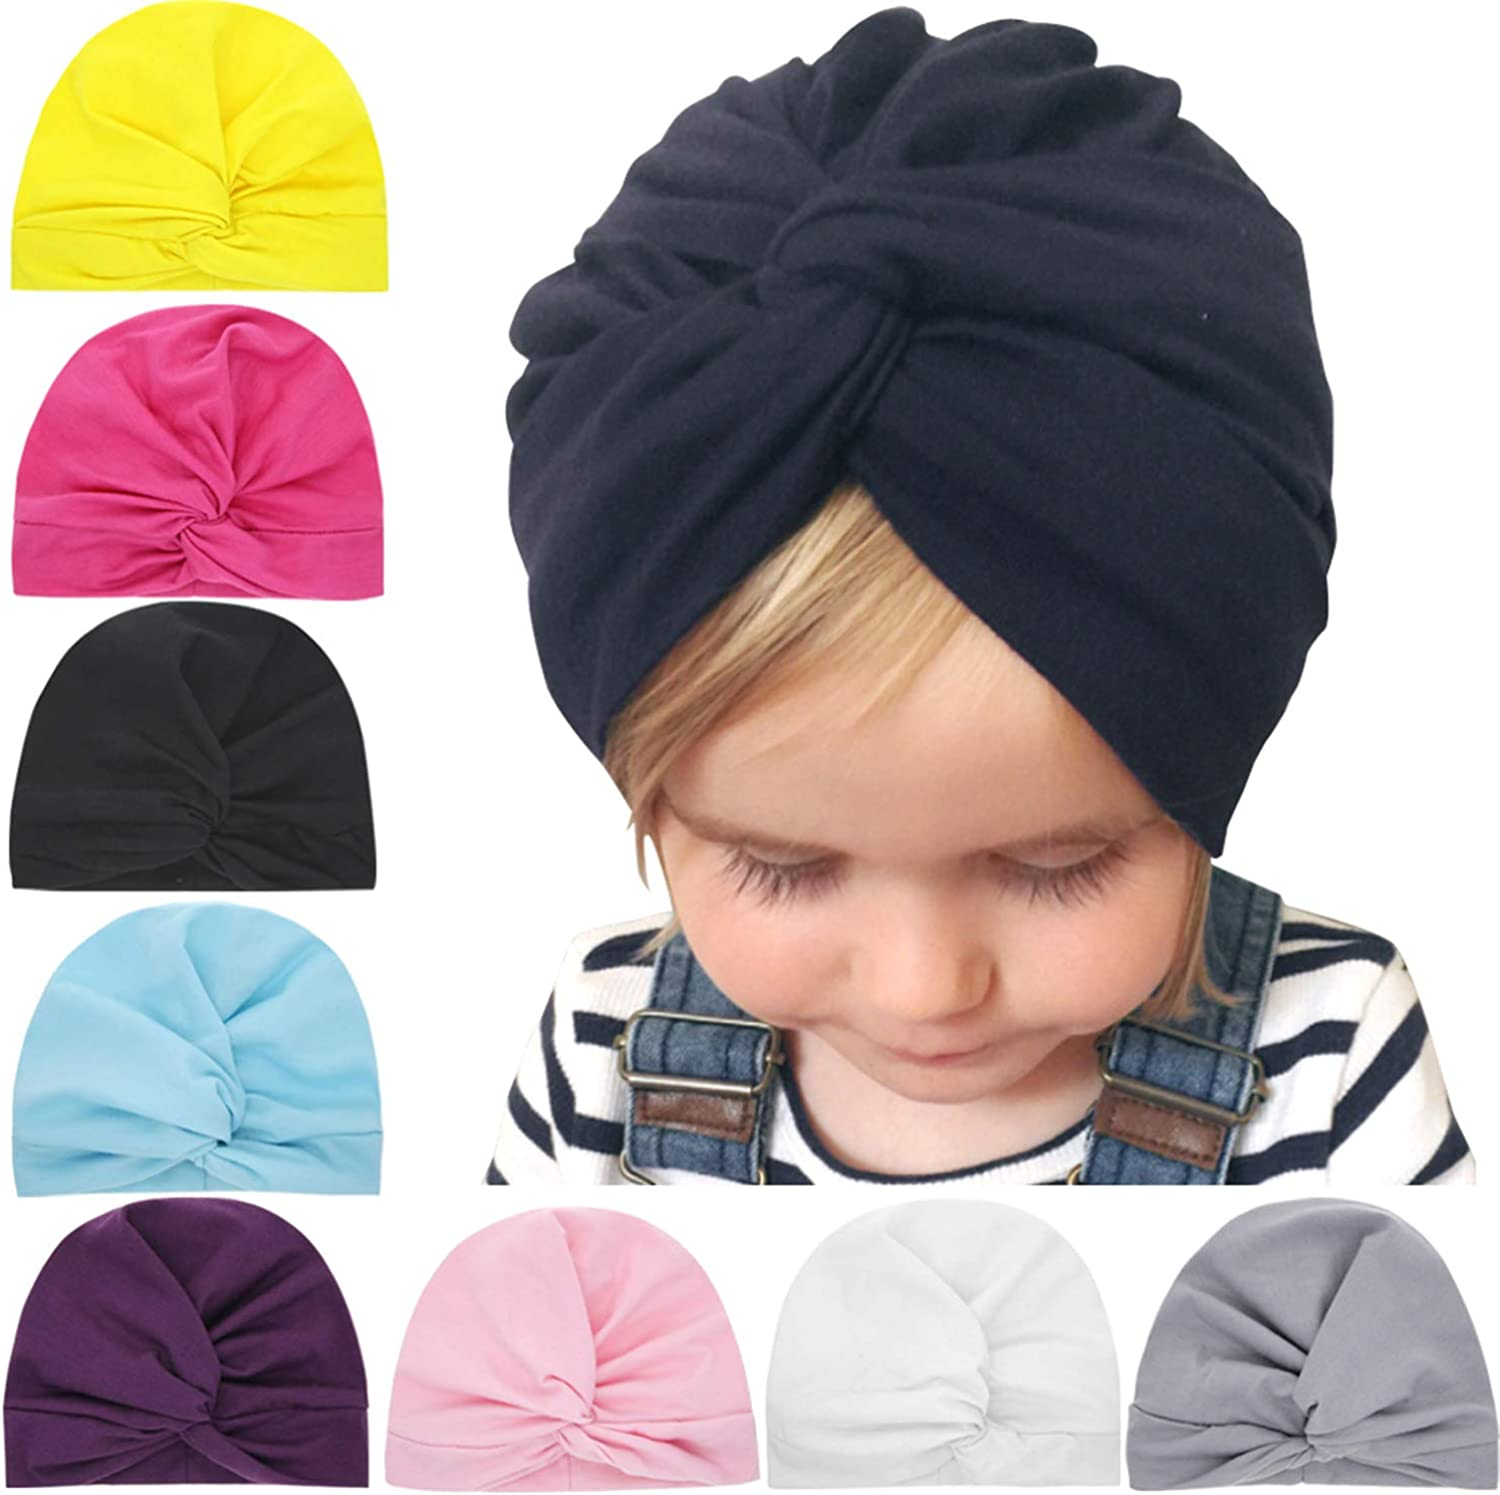 ZOONAI Baby Cotton Cloth Hat Infant Toddler Turban Ear Hat Kids Head Cap